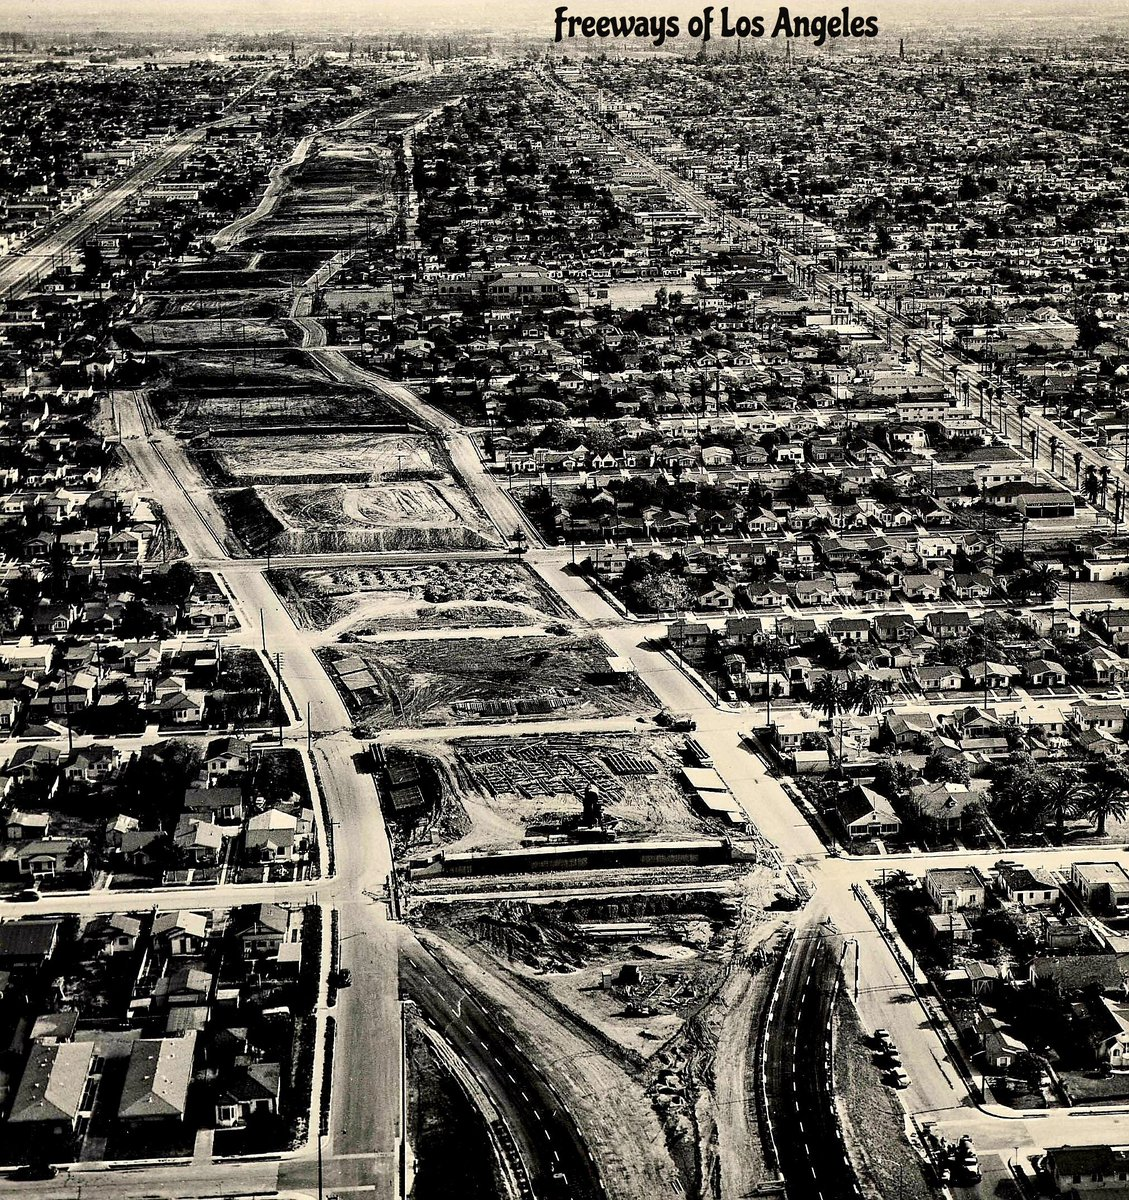 1957-April-15 - Looking south over Harbor Fwy (then US-6/CA-11, now I-110) construction at Century Blvd (foreground); note freeway terminus at bottom. Broadway at left; Figueroa St at right (DOH D7 Archives photo). https://t.co/UxpFfGHX7P